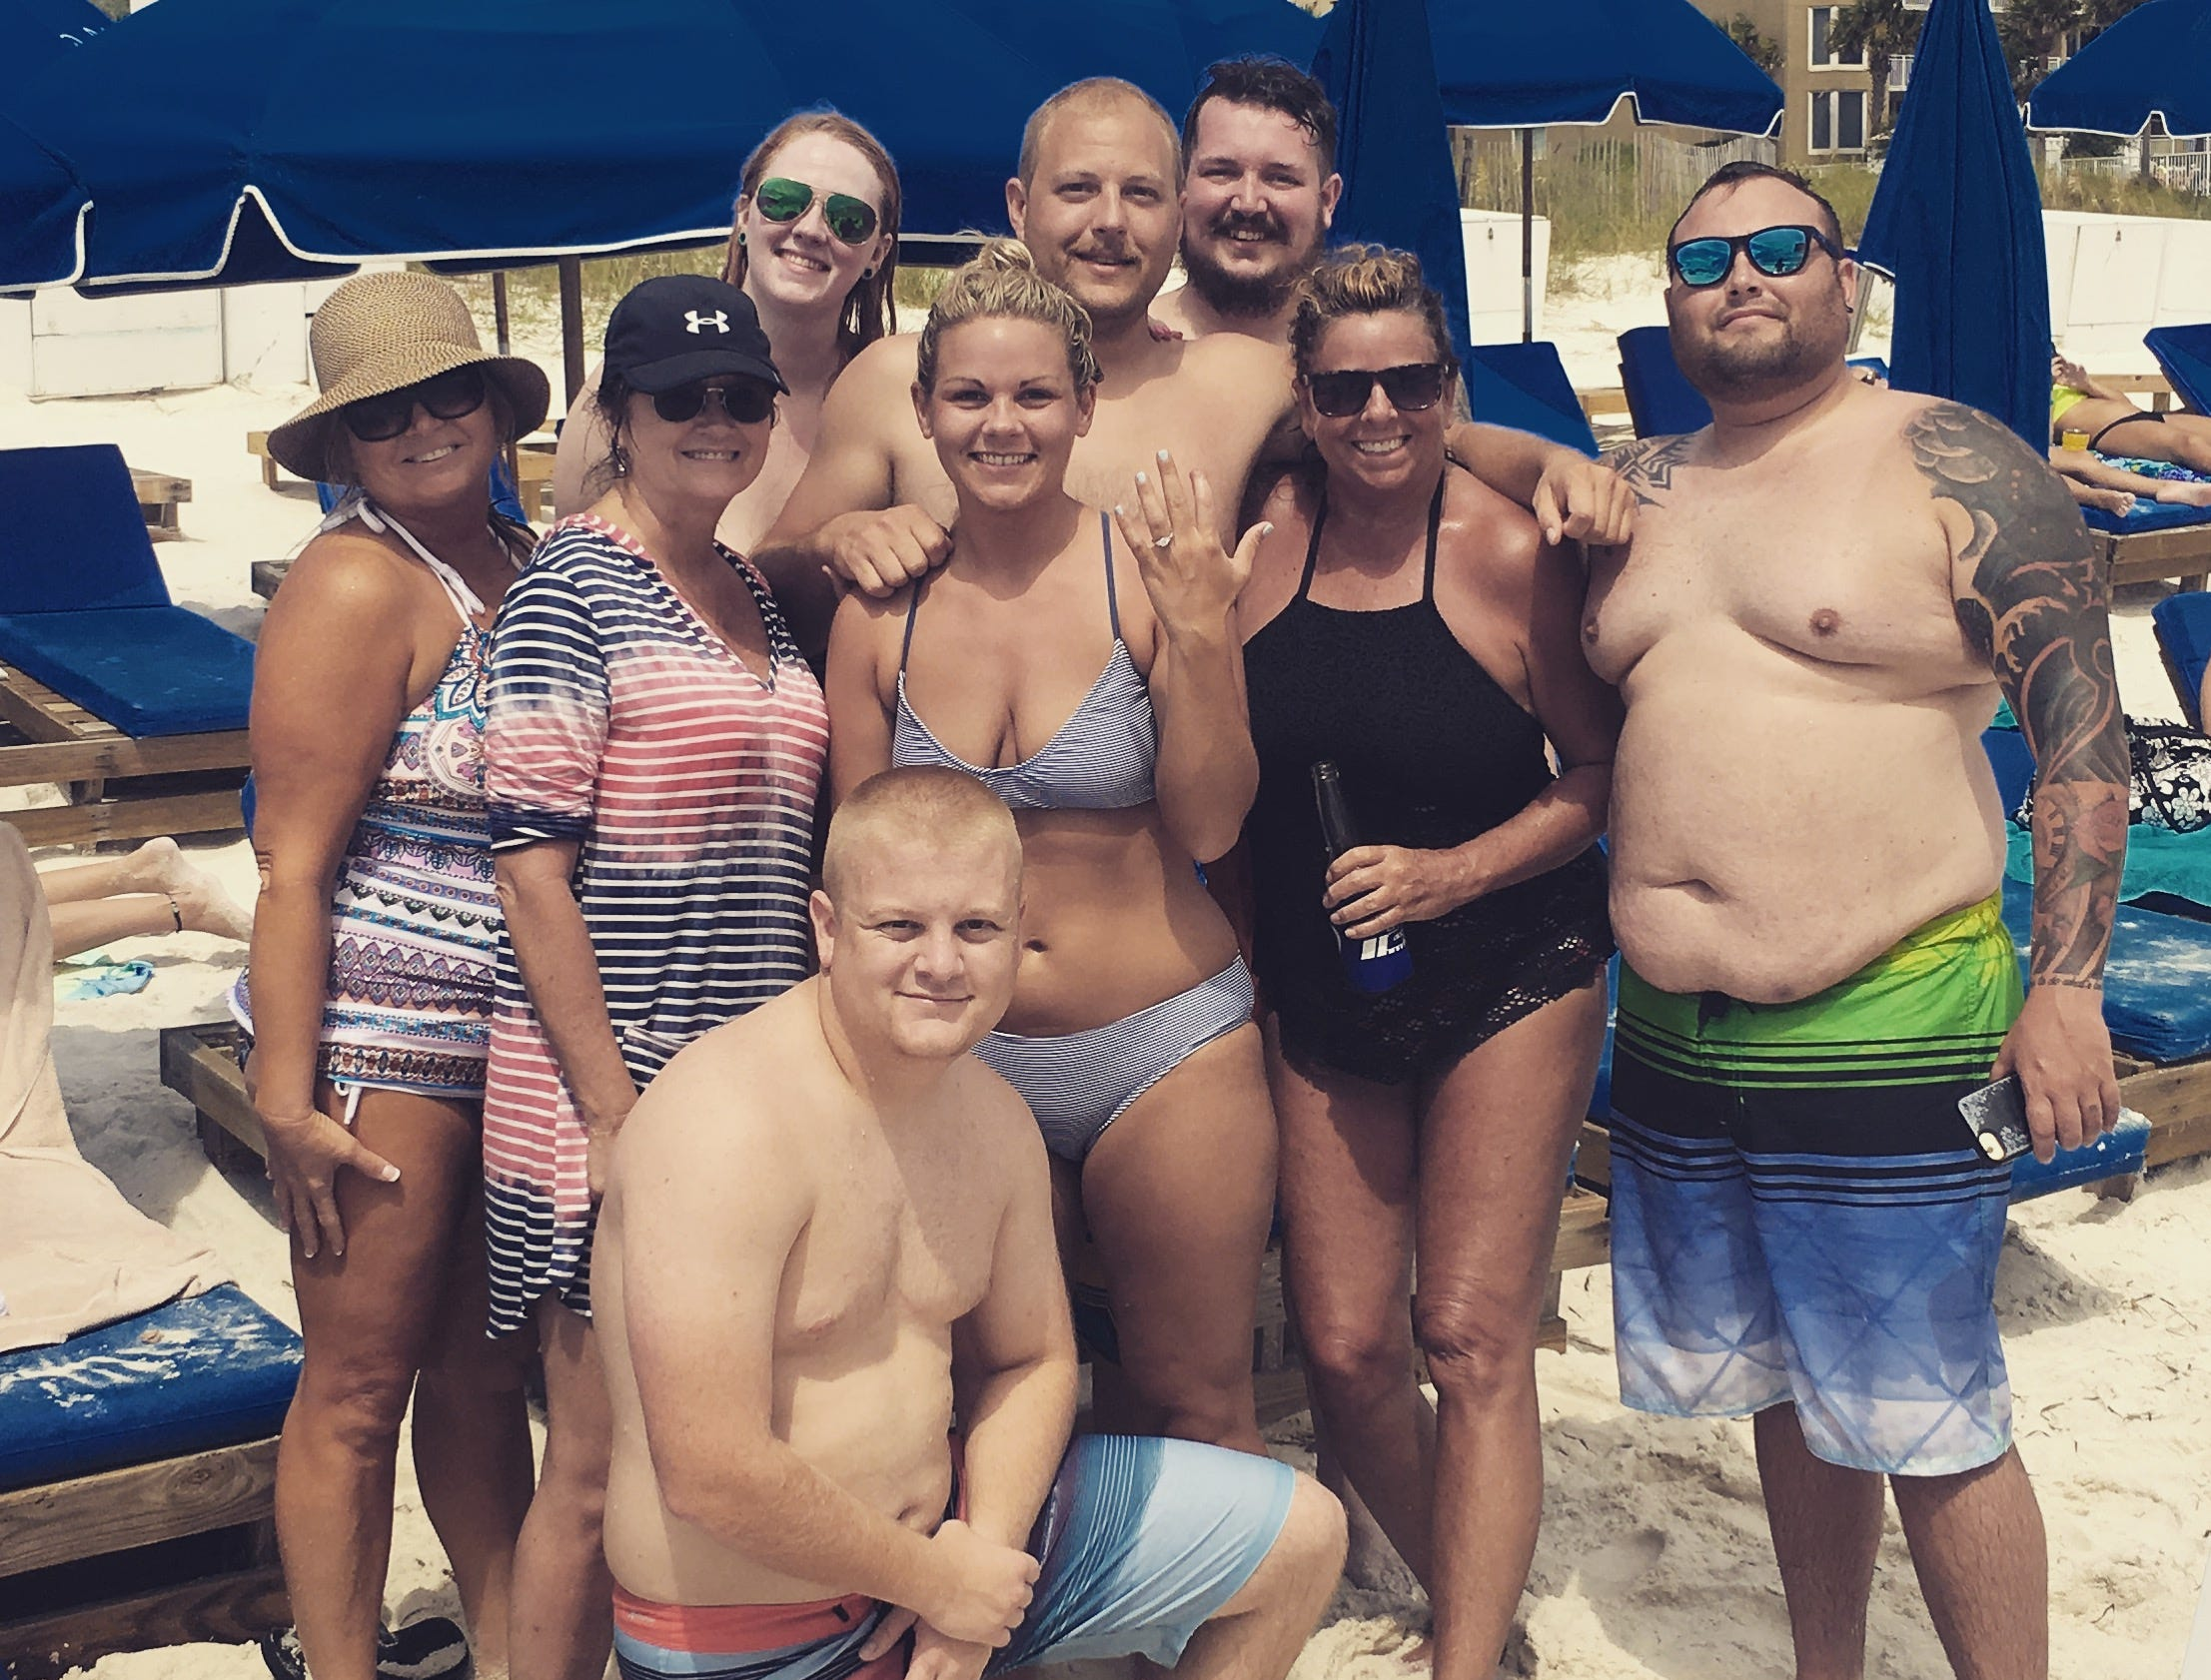 Cassandra Arn, center, and her friends pose for a photo Aug. 3, 2018, after she got engaged on the beach in Panama City, Florida. Her boyfriend, Taylor Farrar, decided to drop to his knee immediately after his lost engagement ring was returned.